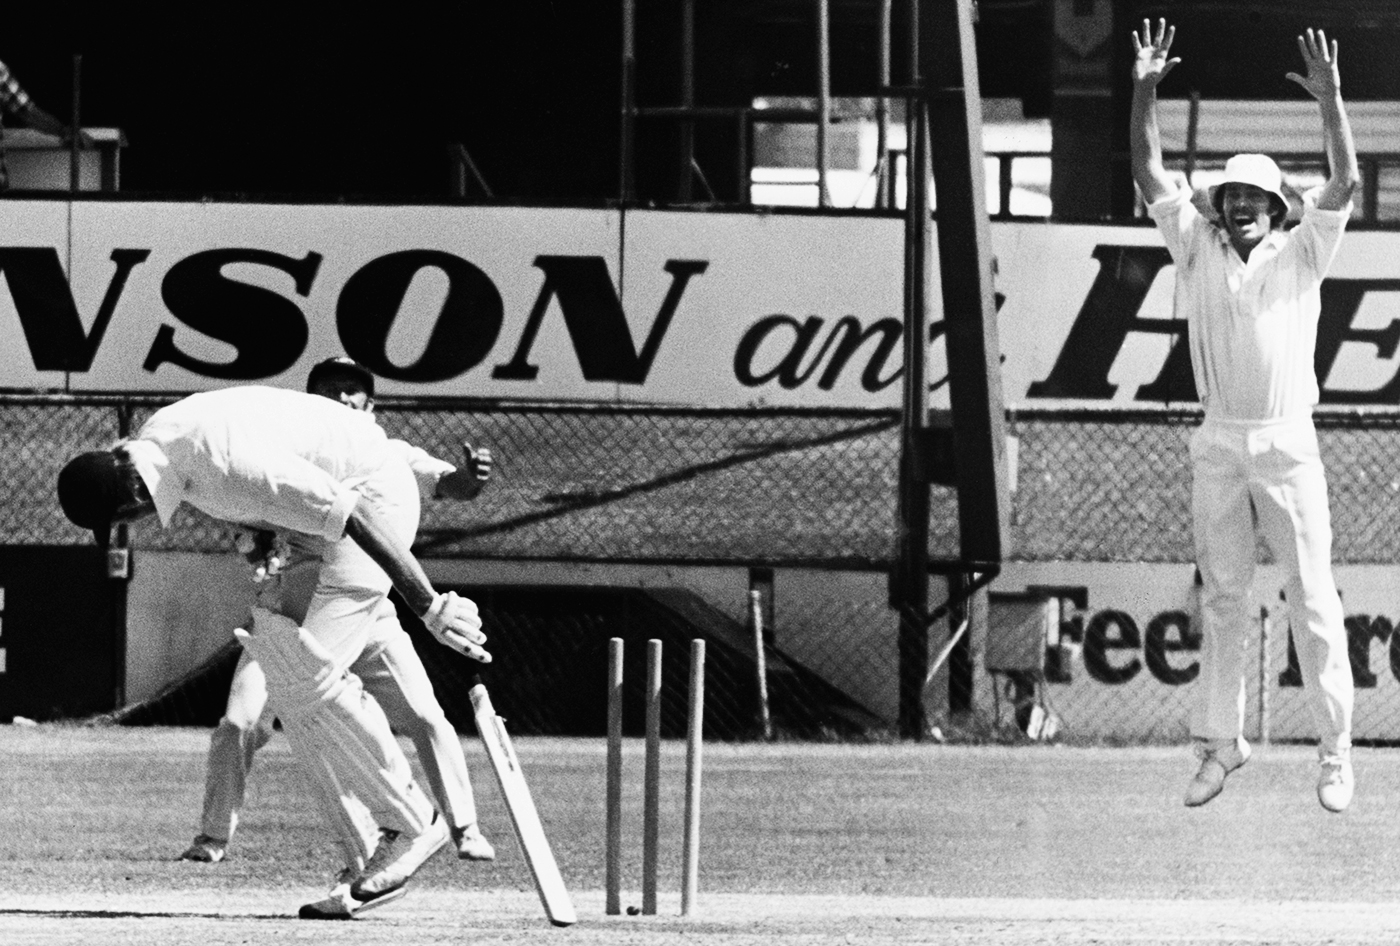 Facing Thommo was bad for your femurs, as Tony Greig finds out here in Brisbane in 1974